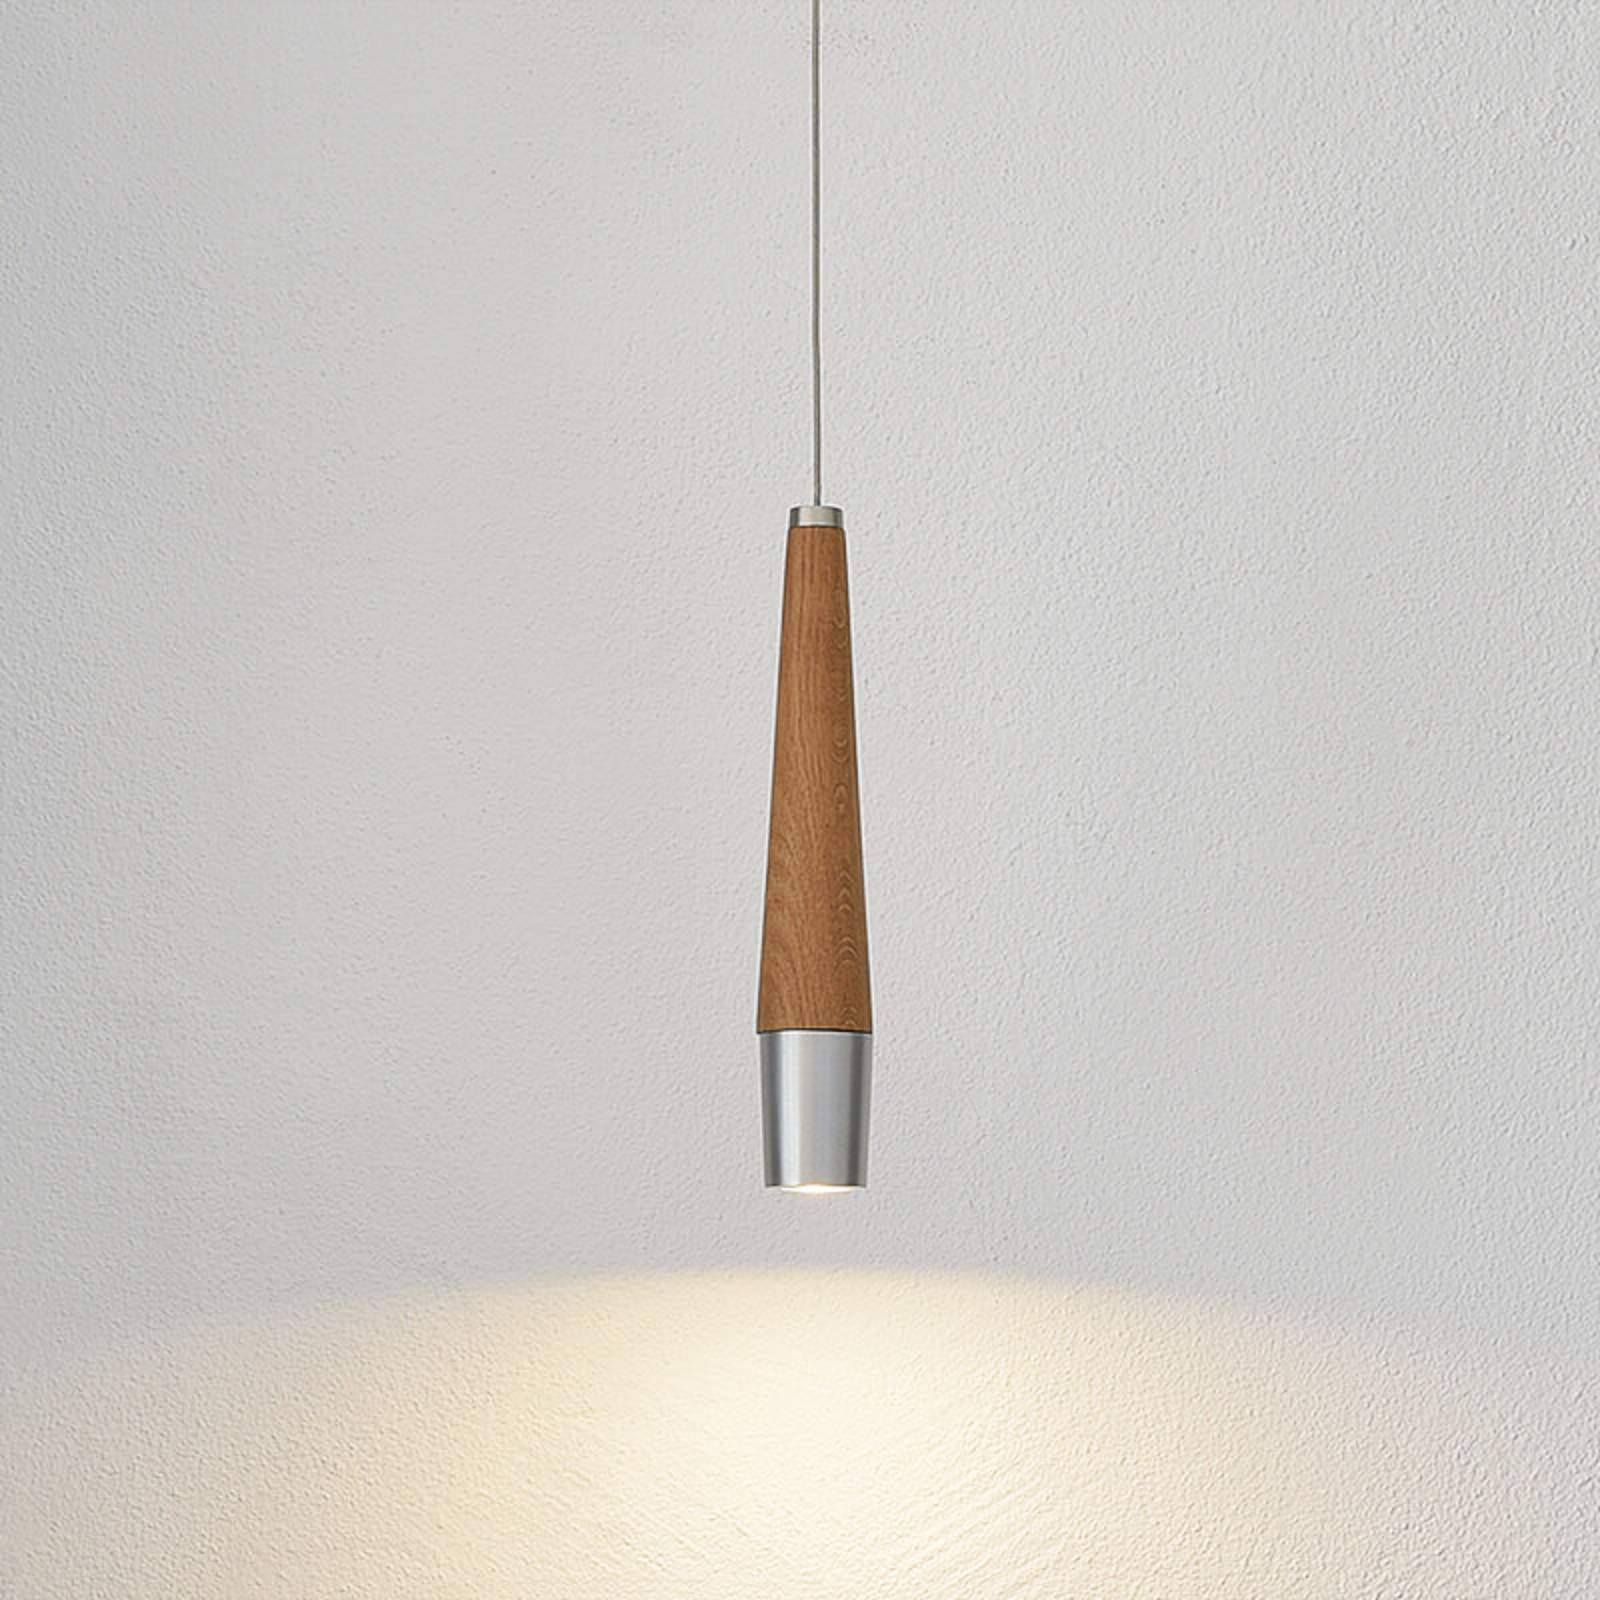 Conico - LED pendant light with solid wood element from HerzBlut